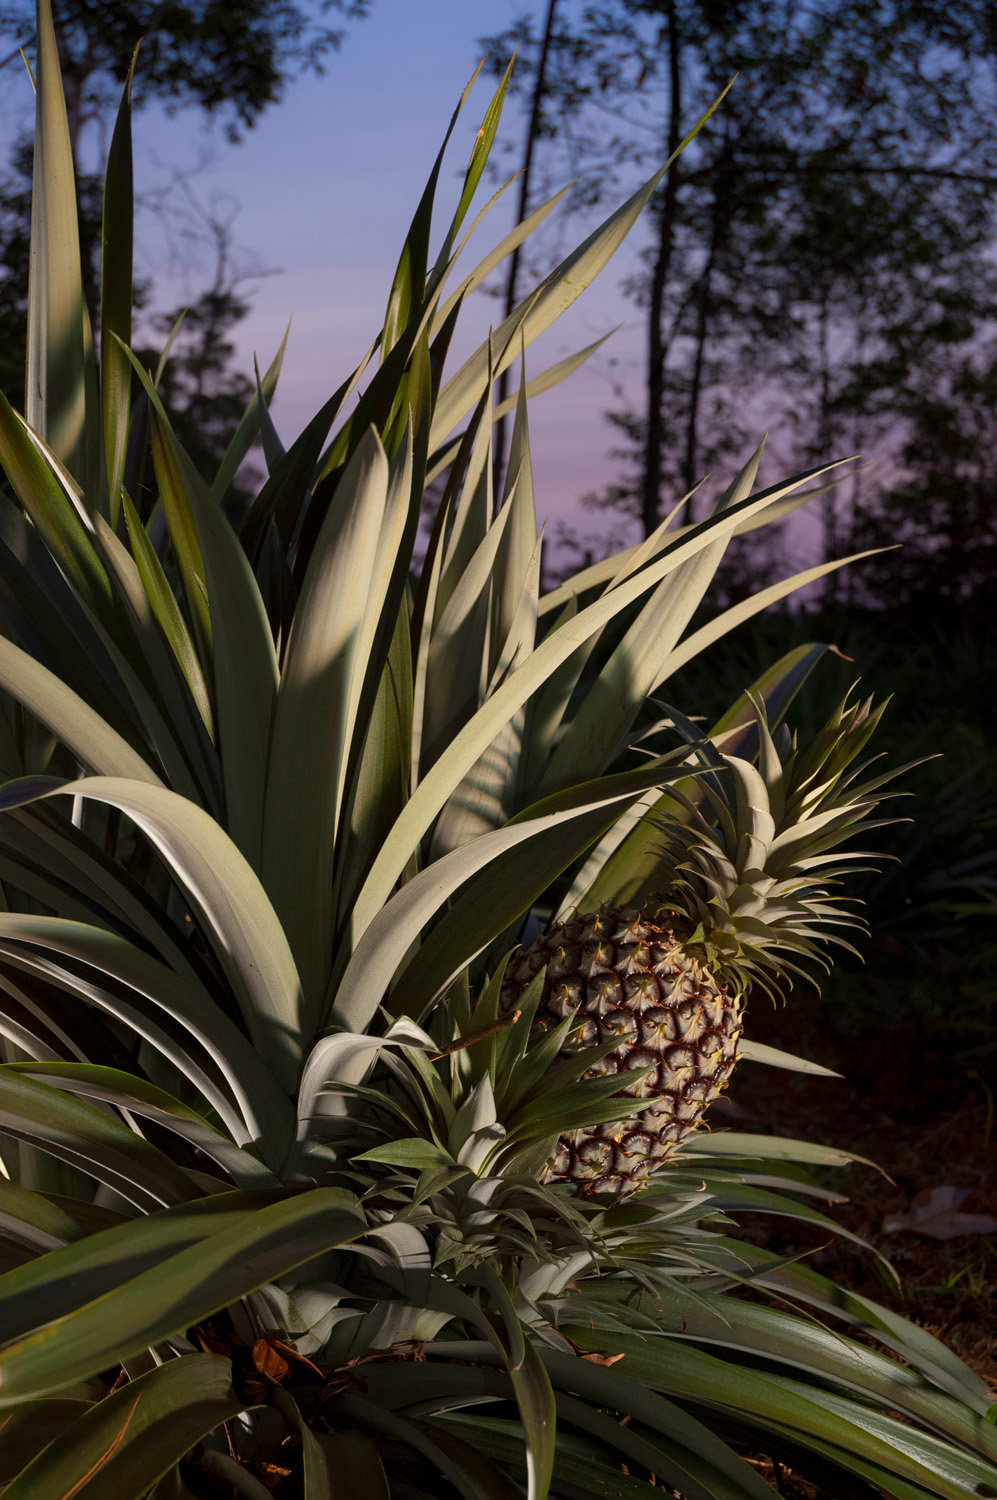 Pineapples grow in a field on a hill above Pa Lungan, in Malaysian Borneo.